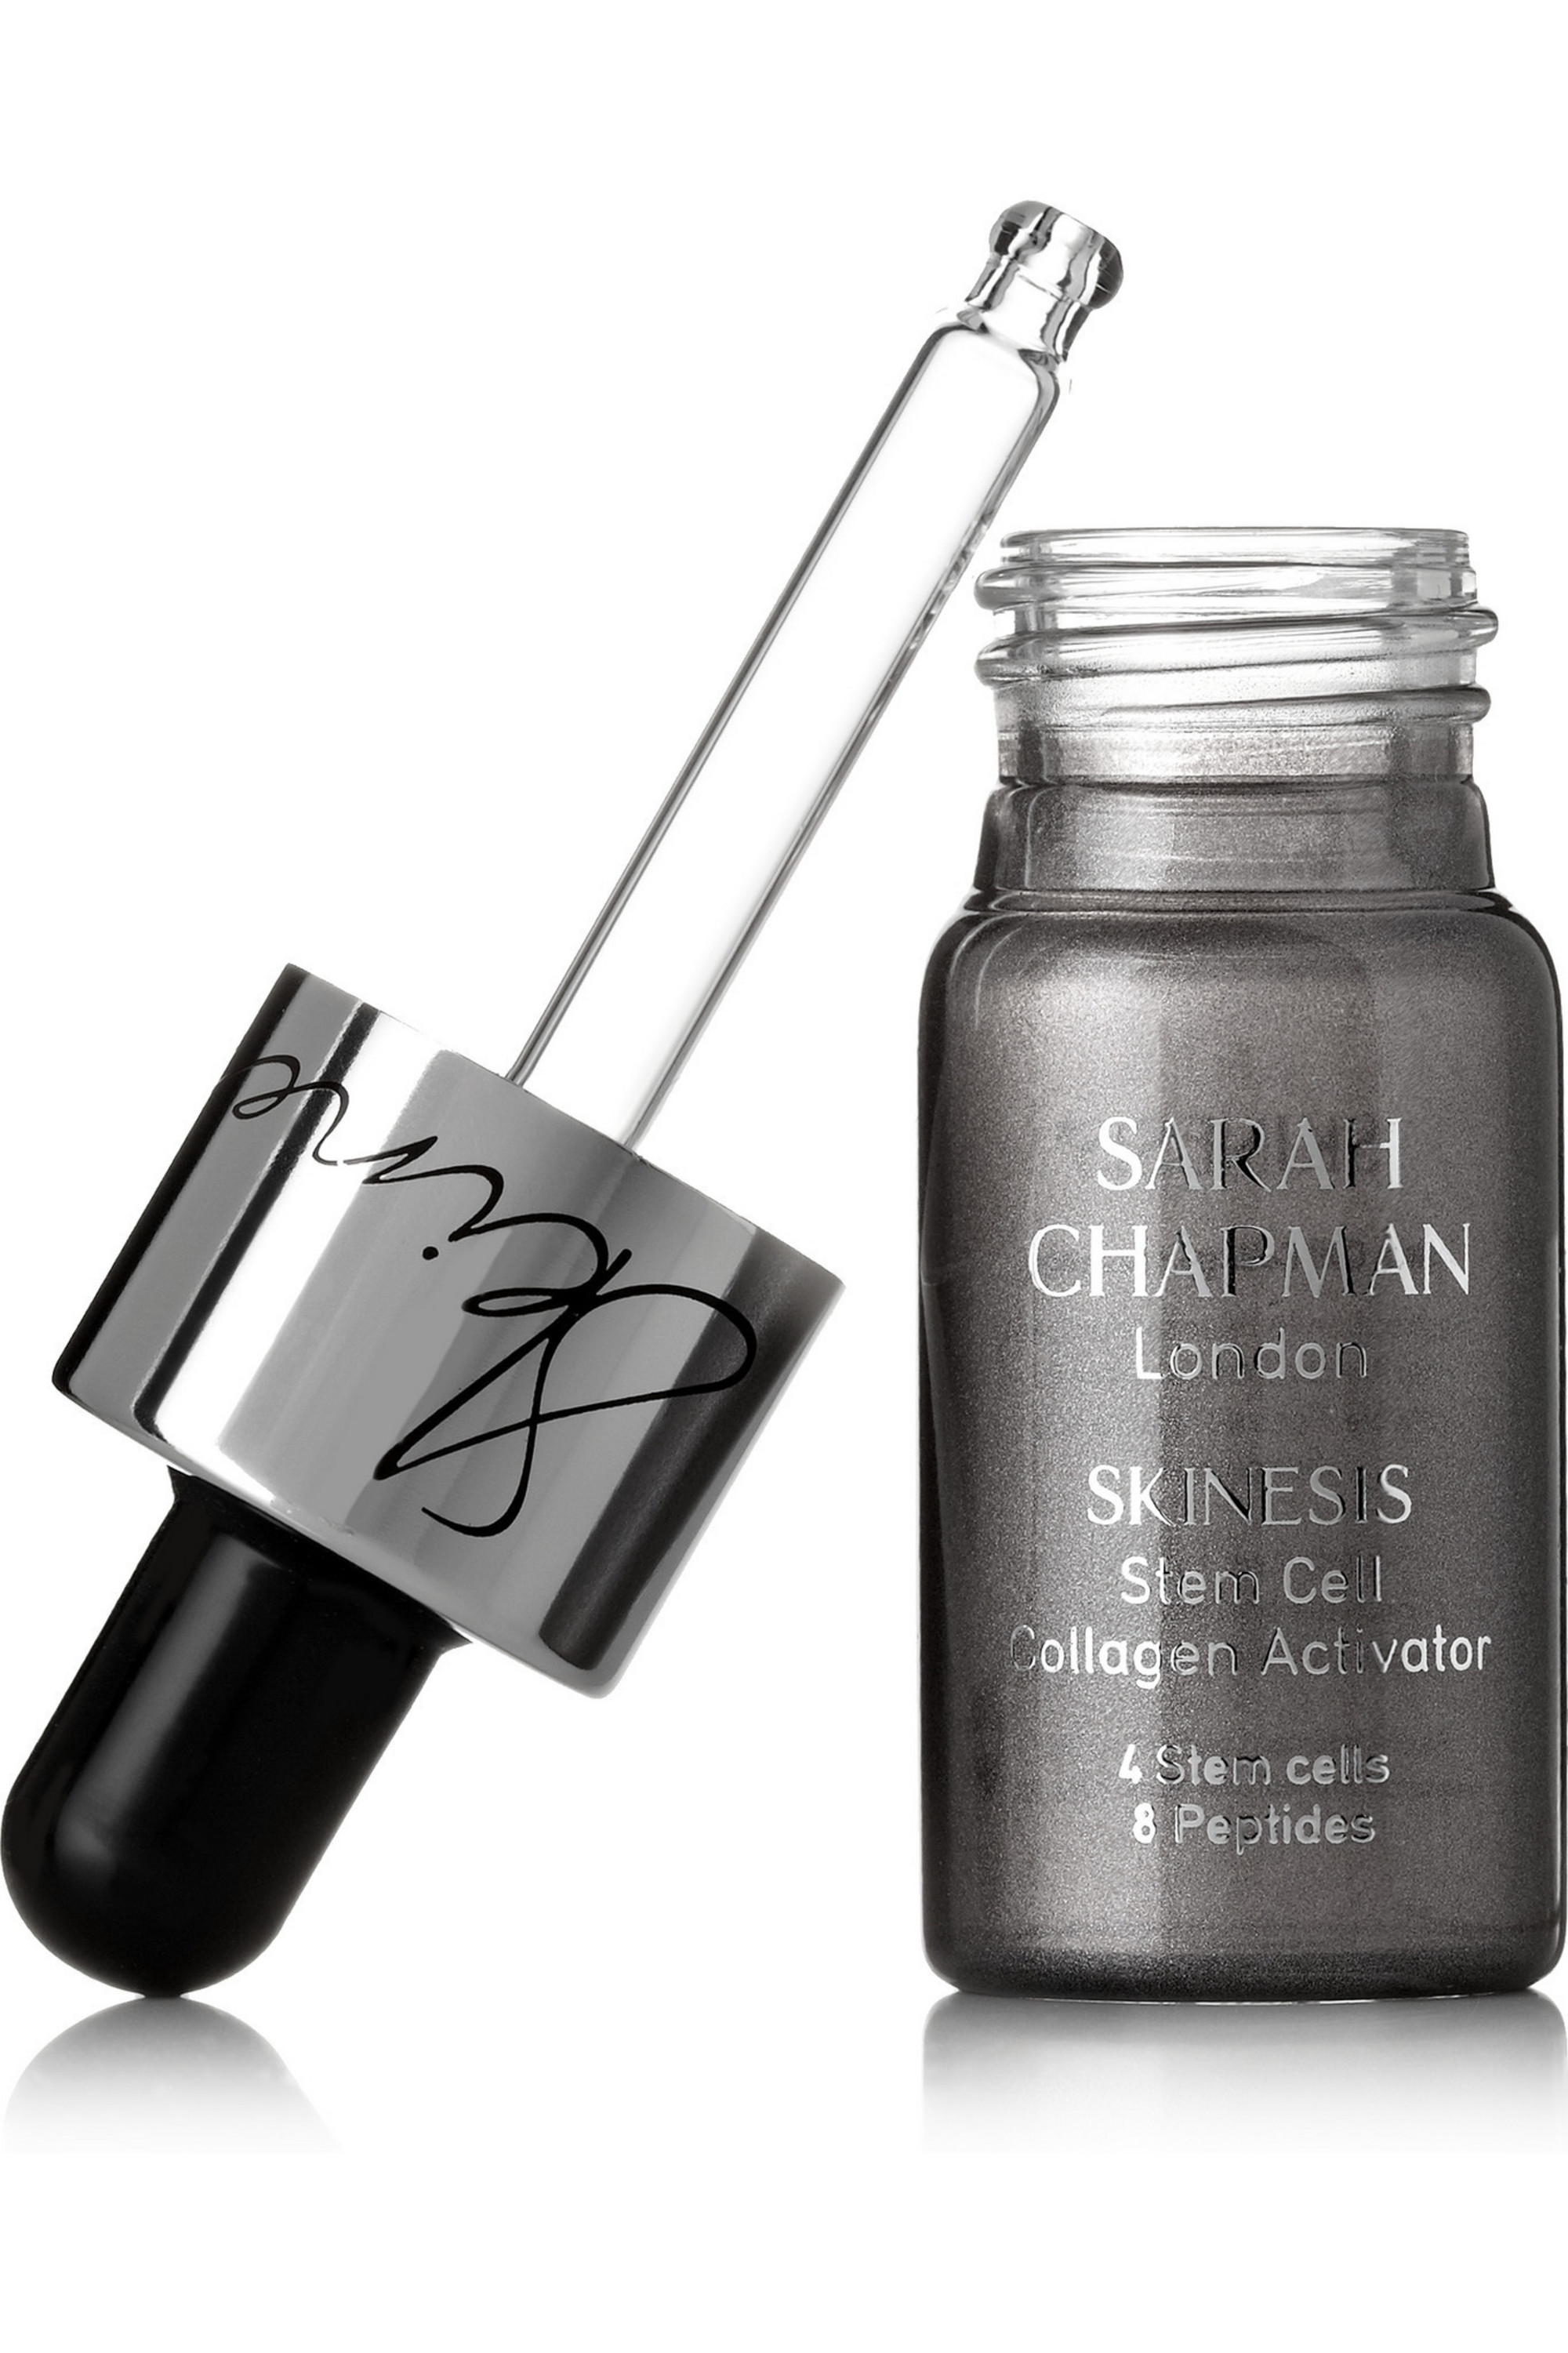 Sarah Chapman Skinesis Stem Cell Collagen Activator, 4 x 10ml